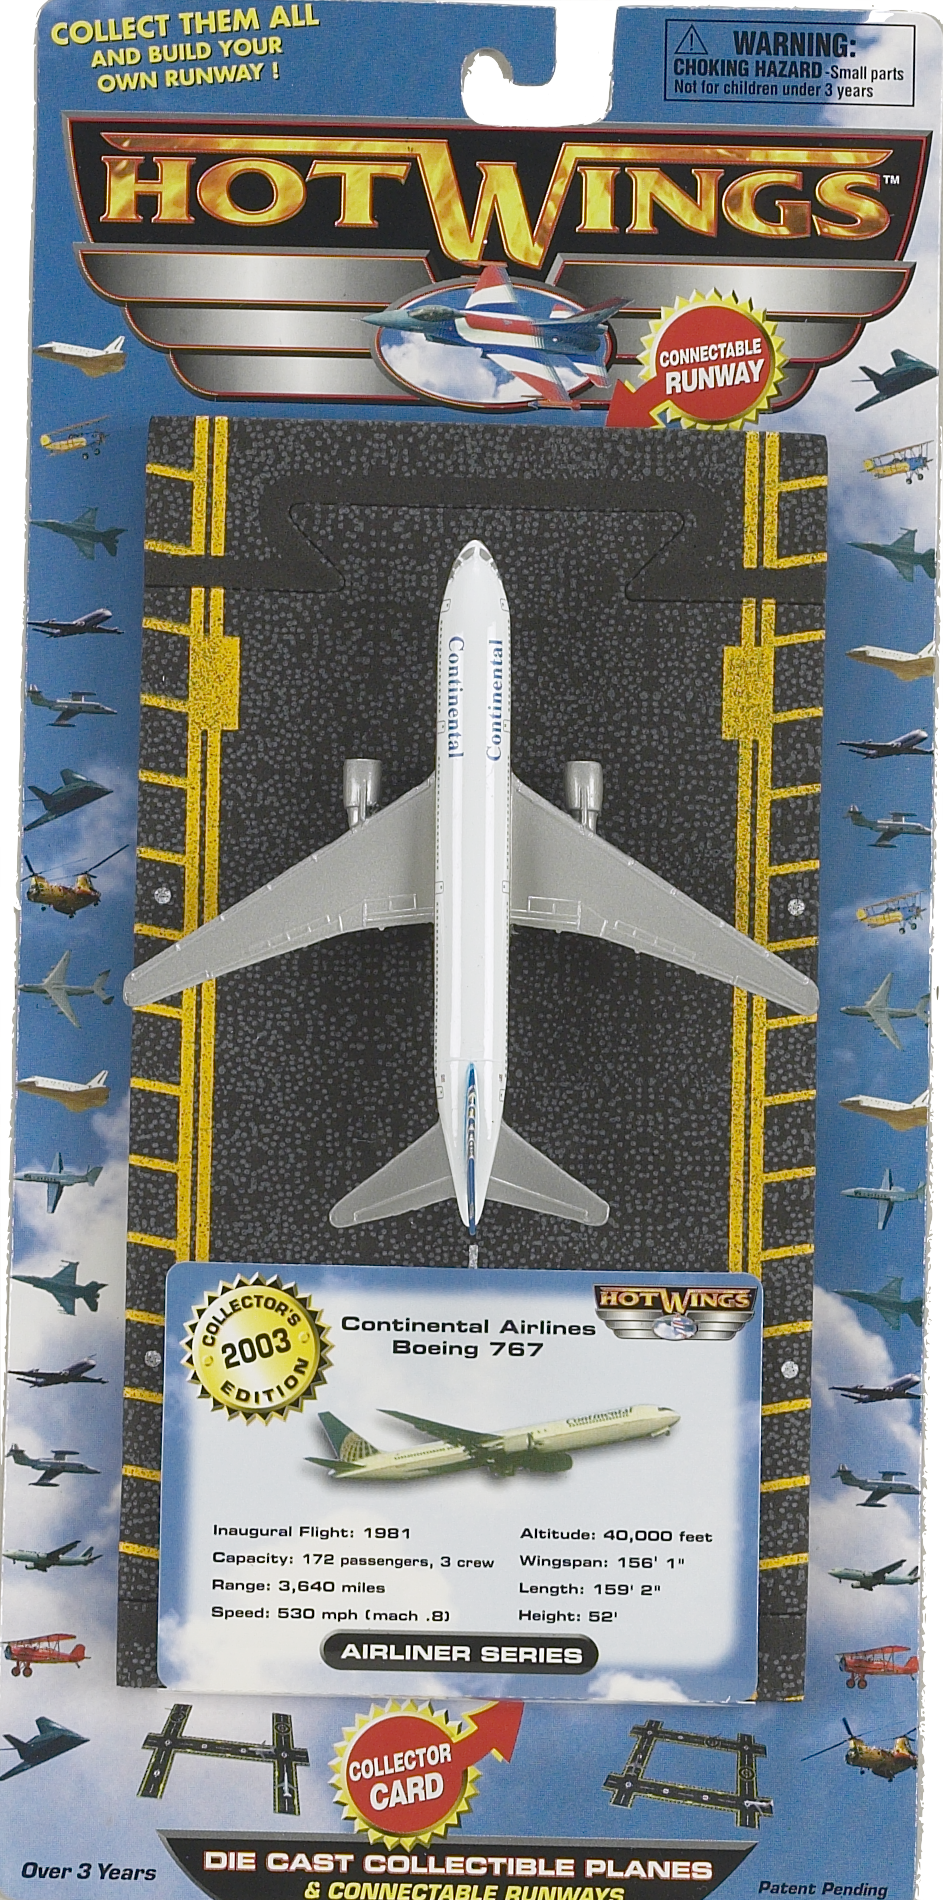 Hot Wings Cessna 172 Jet With Connectible Runway Toys Airplane Wing Parts Aircraft Suppliers View Larger